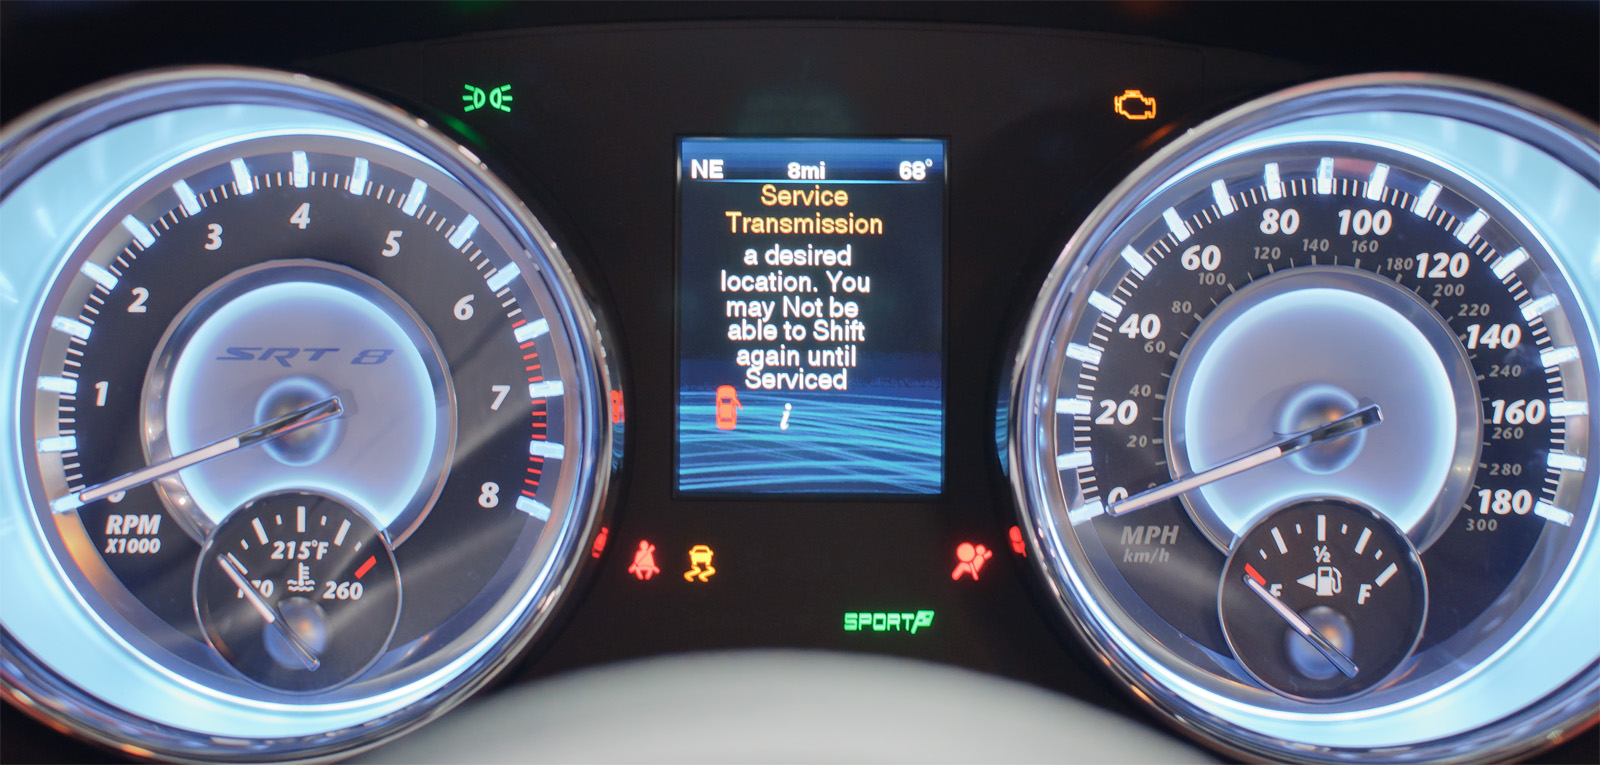 Chrysler 300srt >> File:Instrument Cluster, Chrysler 300 SRT-8 (US) - Flickr - skinnylawyer.jpg - Wikimedia Commons